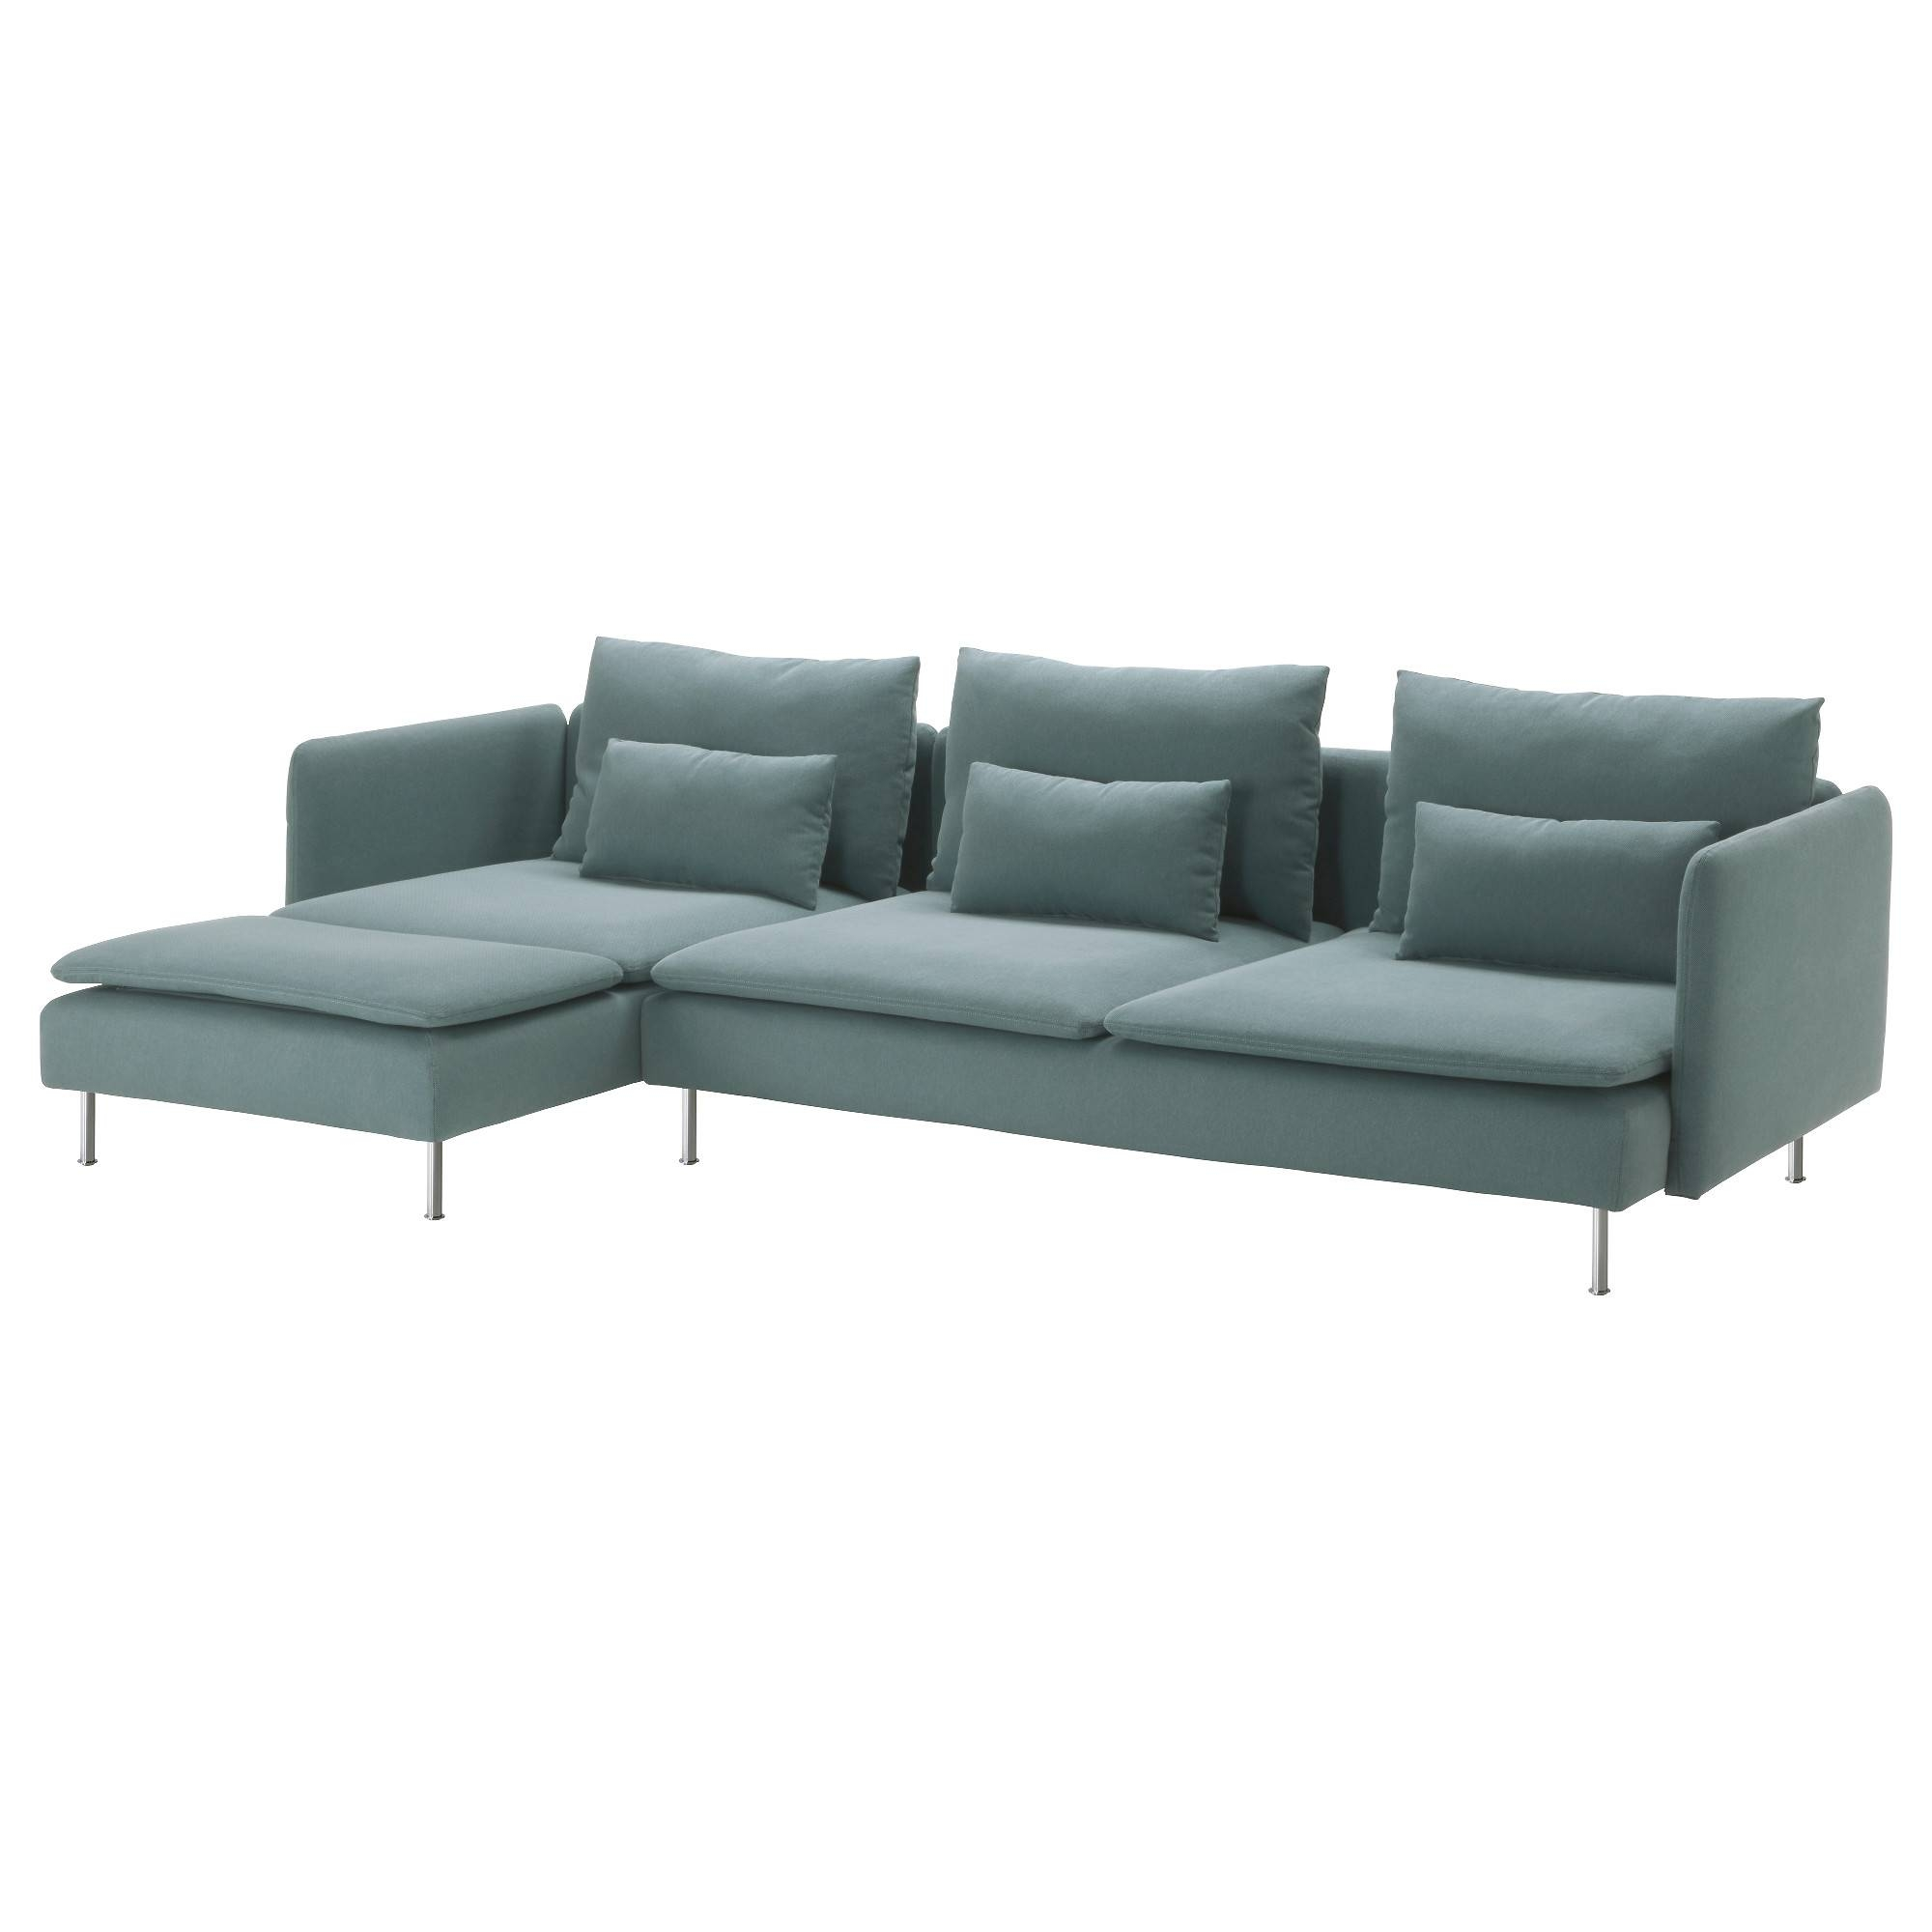 Sectional Sofas & Couches - Ikea with regard to Ikea Sectional Sofa Bed (Image 17 of 25)